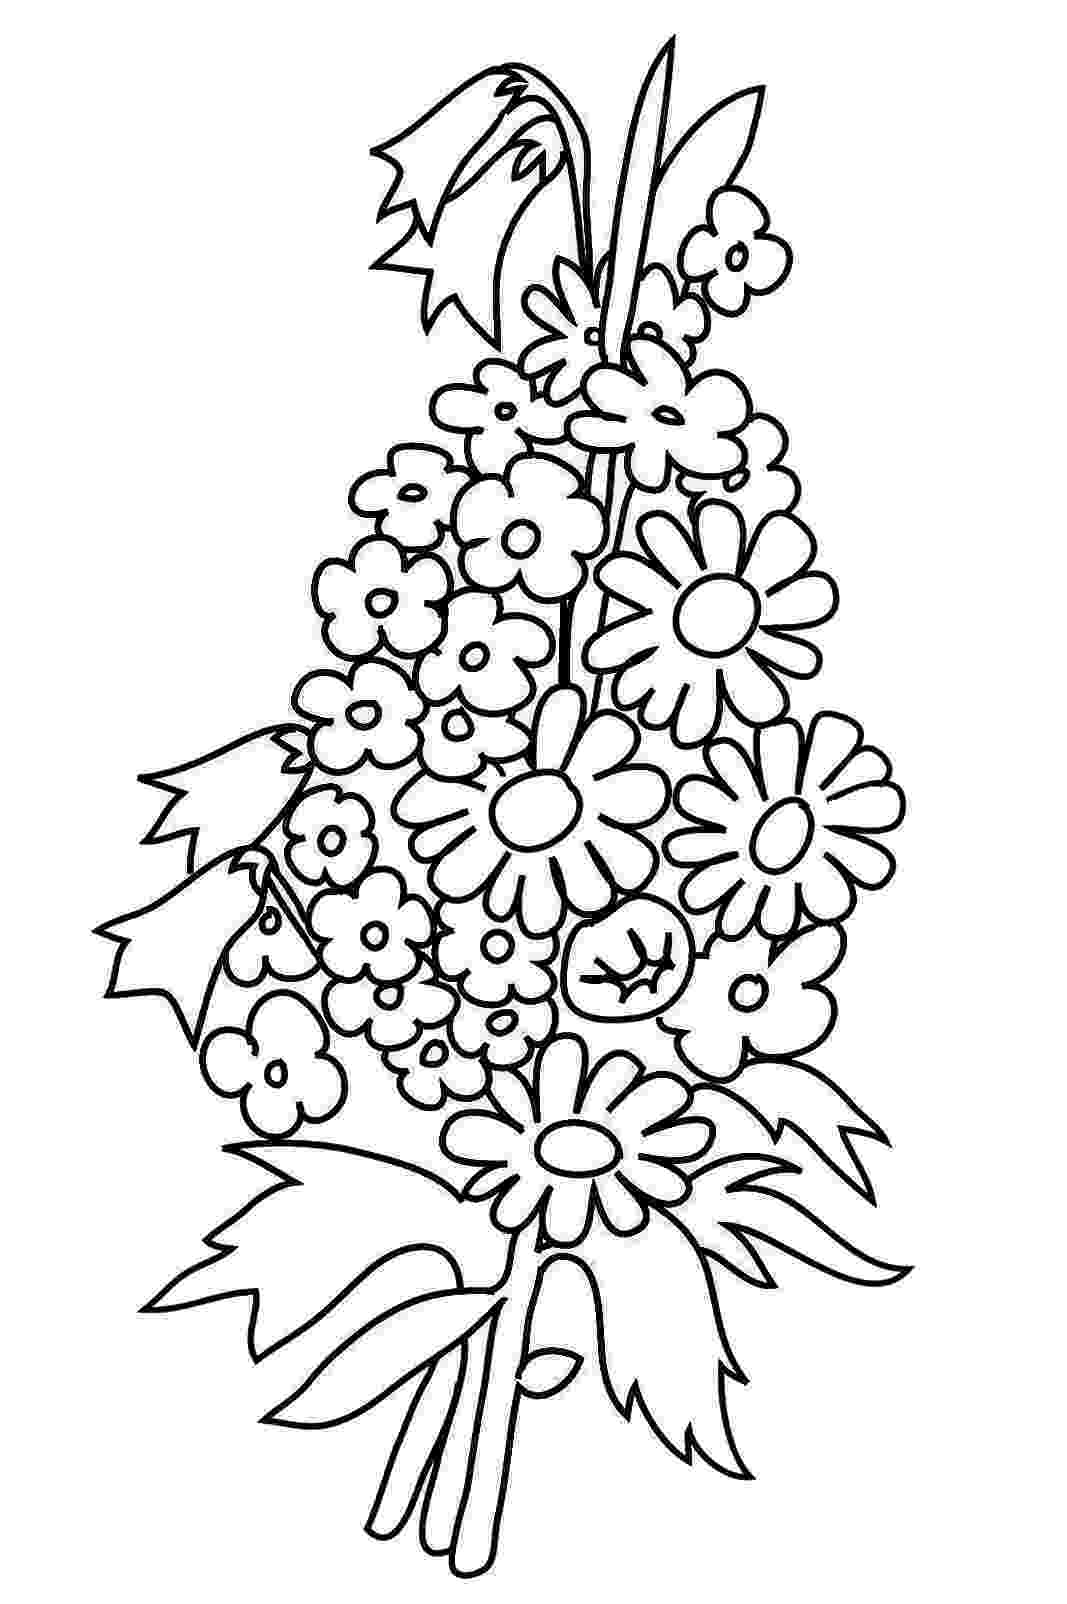 flower colouring pages the gallifrey crafting company page 6 pages flower colouring